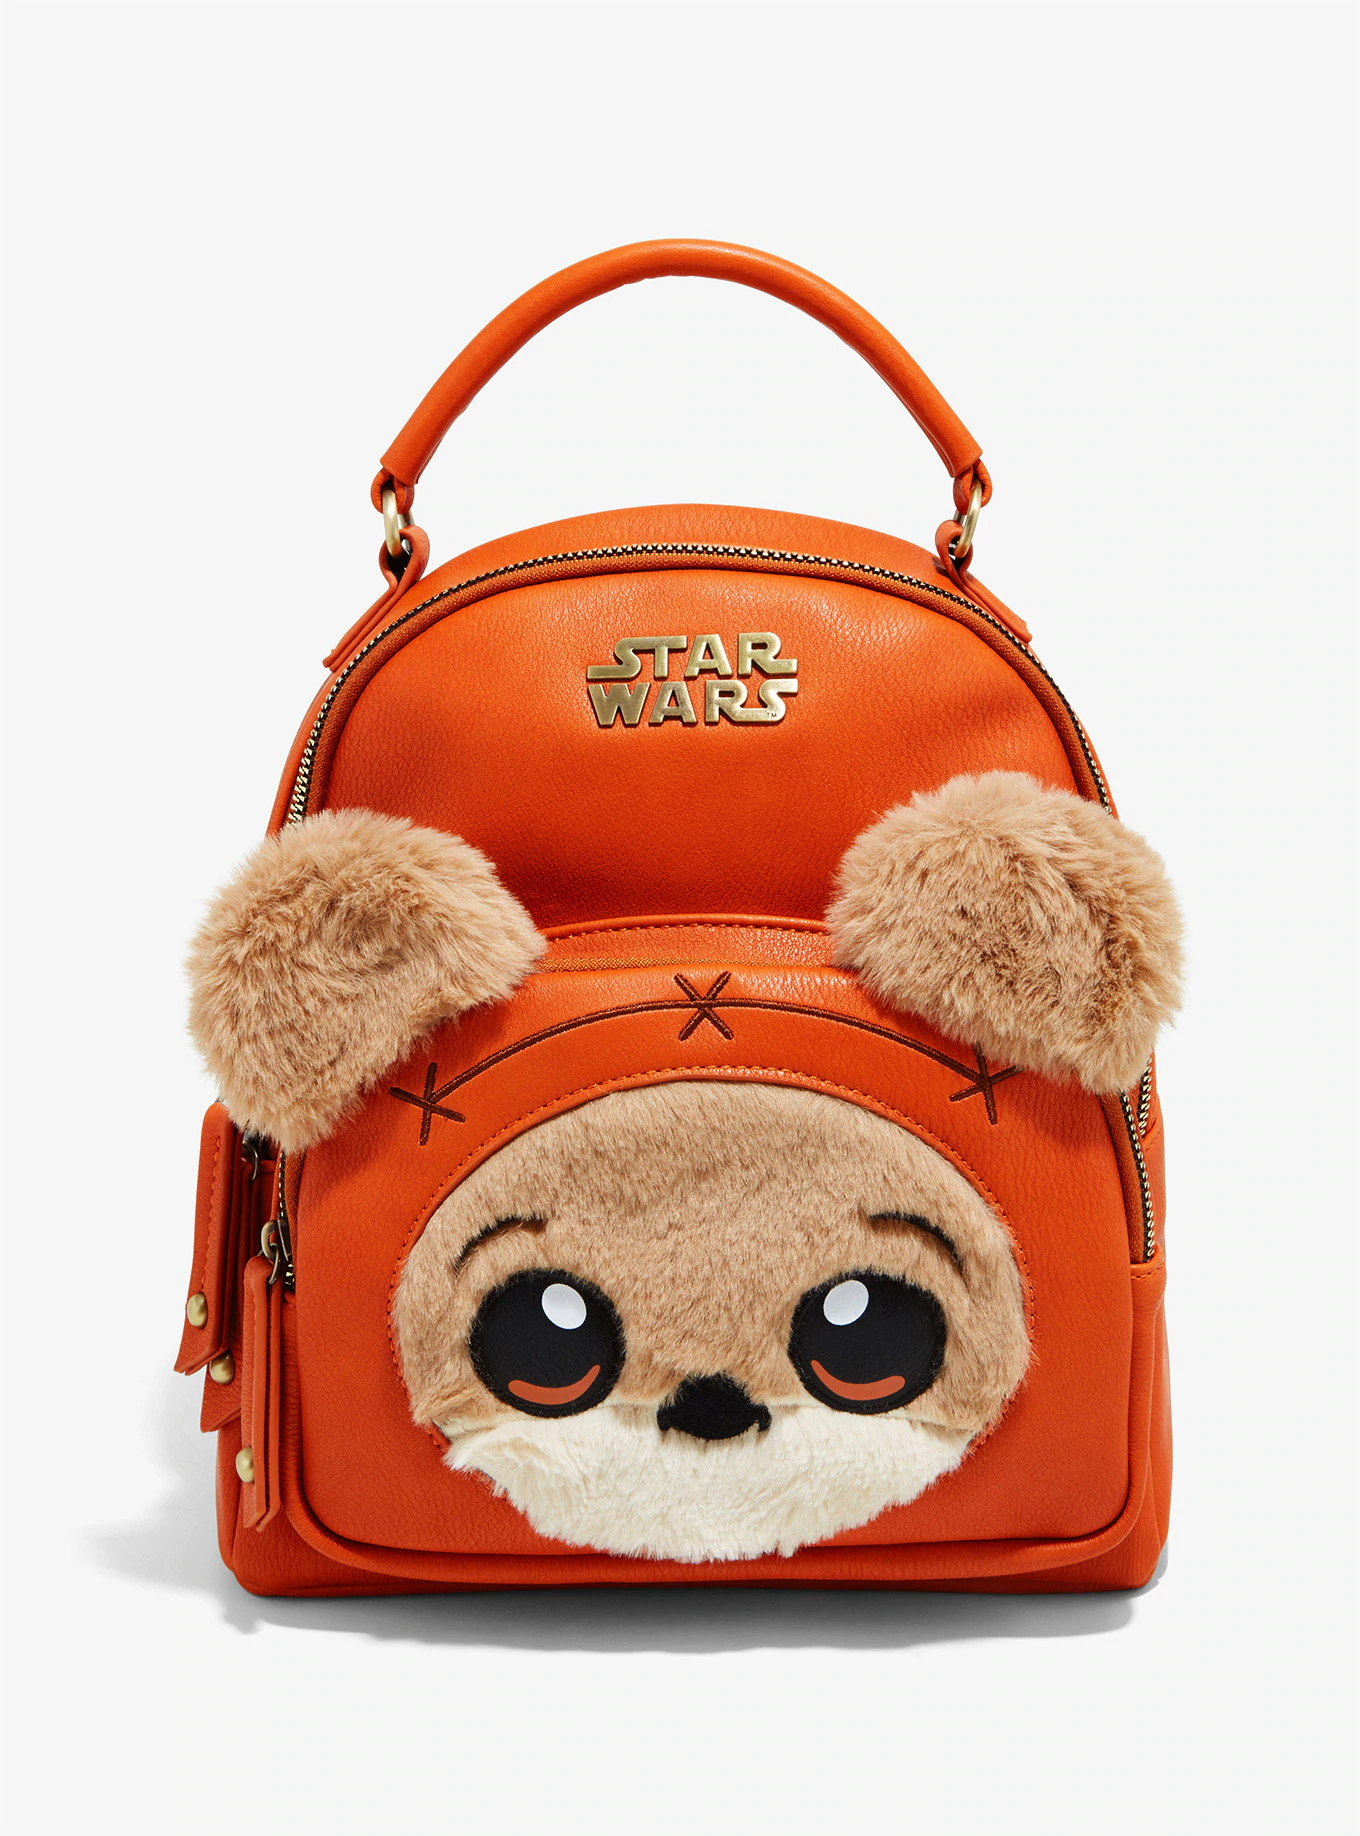 Star Wars Ewok Furry Mini Backpack at her Universe